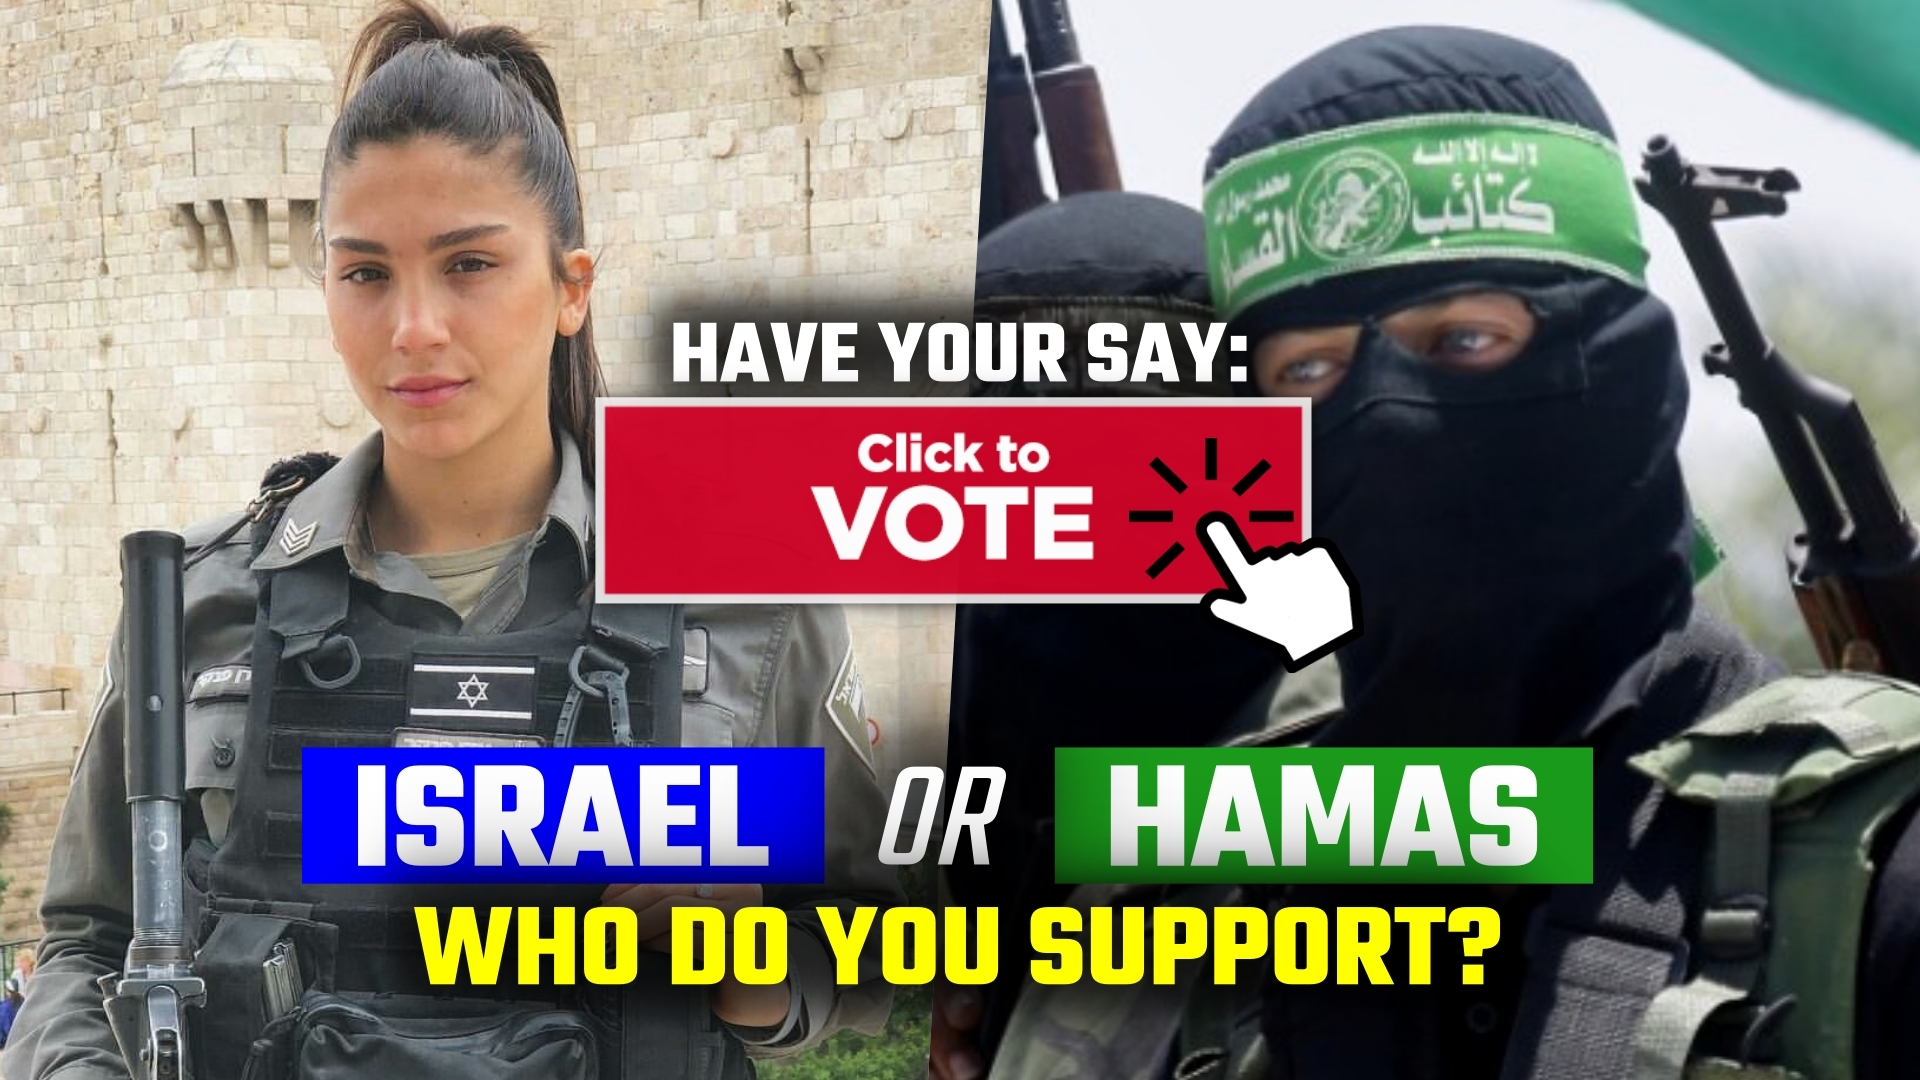 POLL: Who do you support? Israel OR Hamas